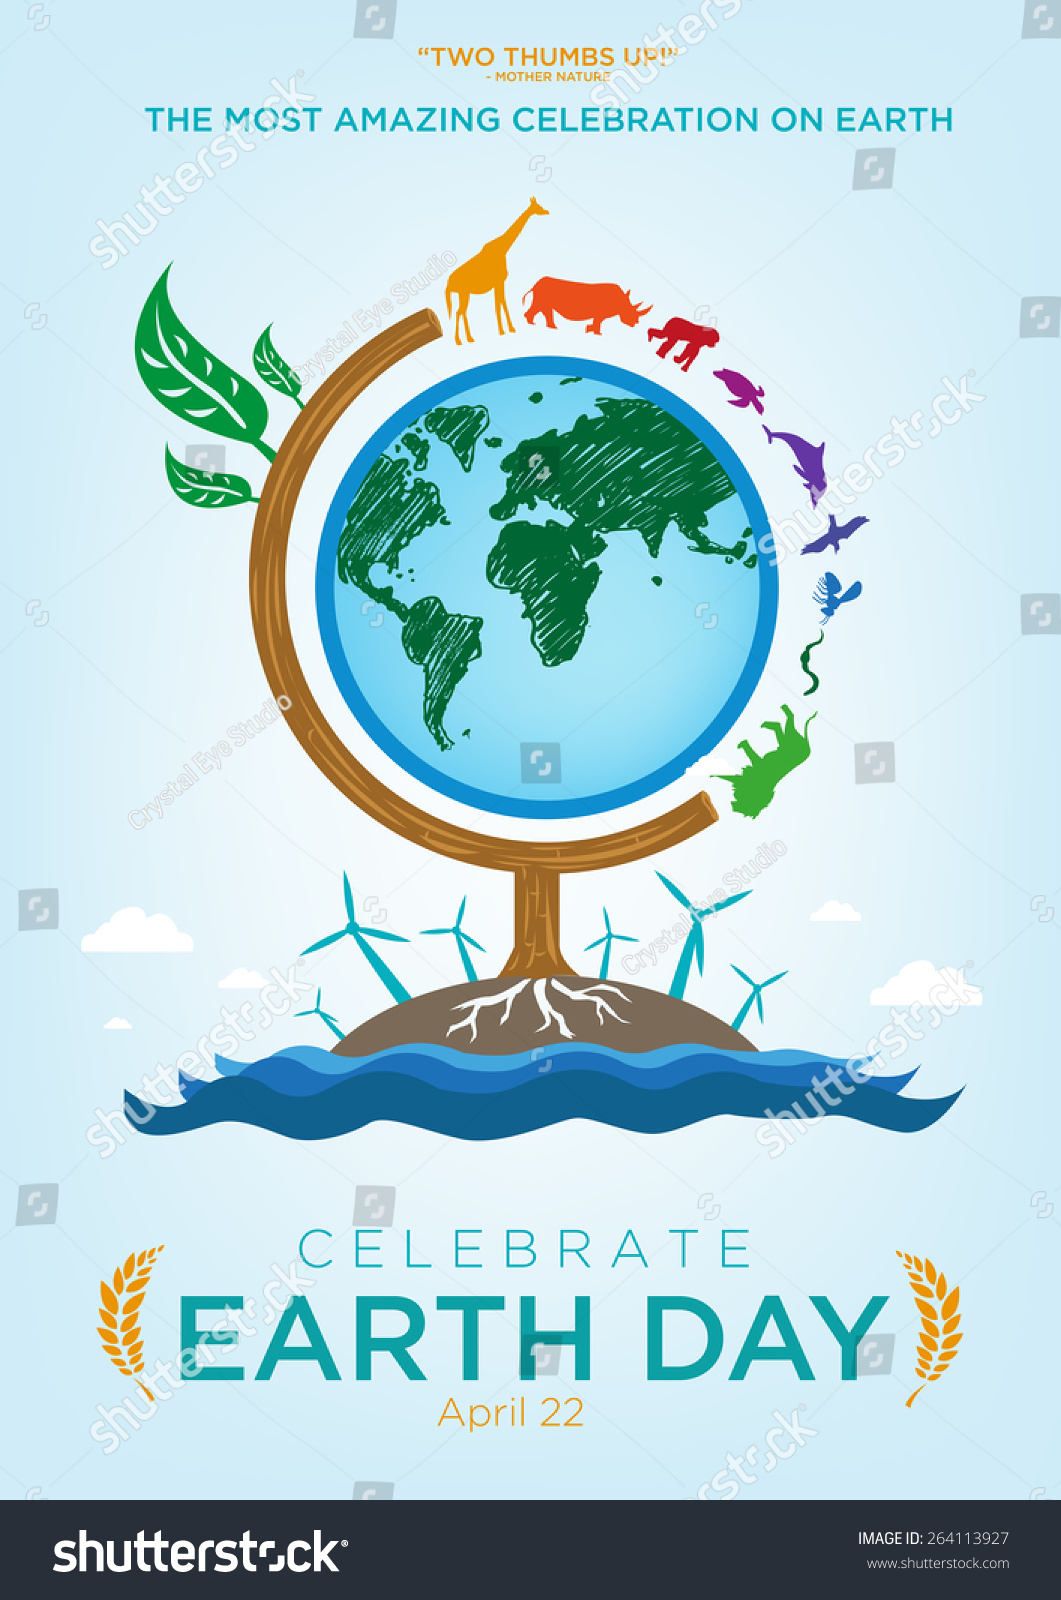 Poster design sample - Earth Day Celebration Poster Design Template With Animals Roaming Around A Globe Themed Tree Also